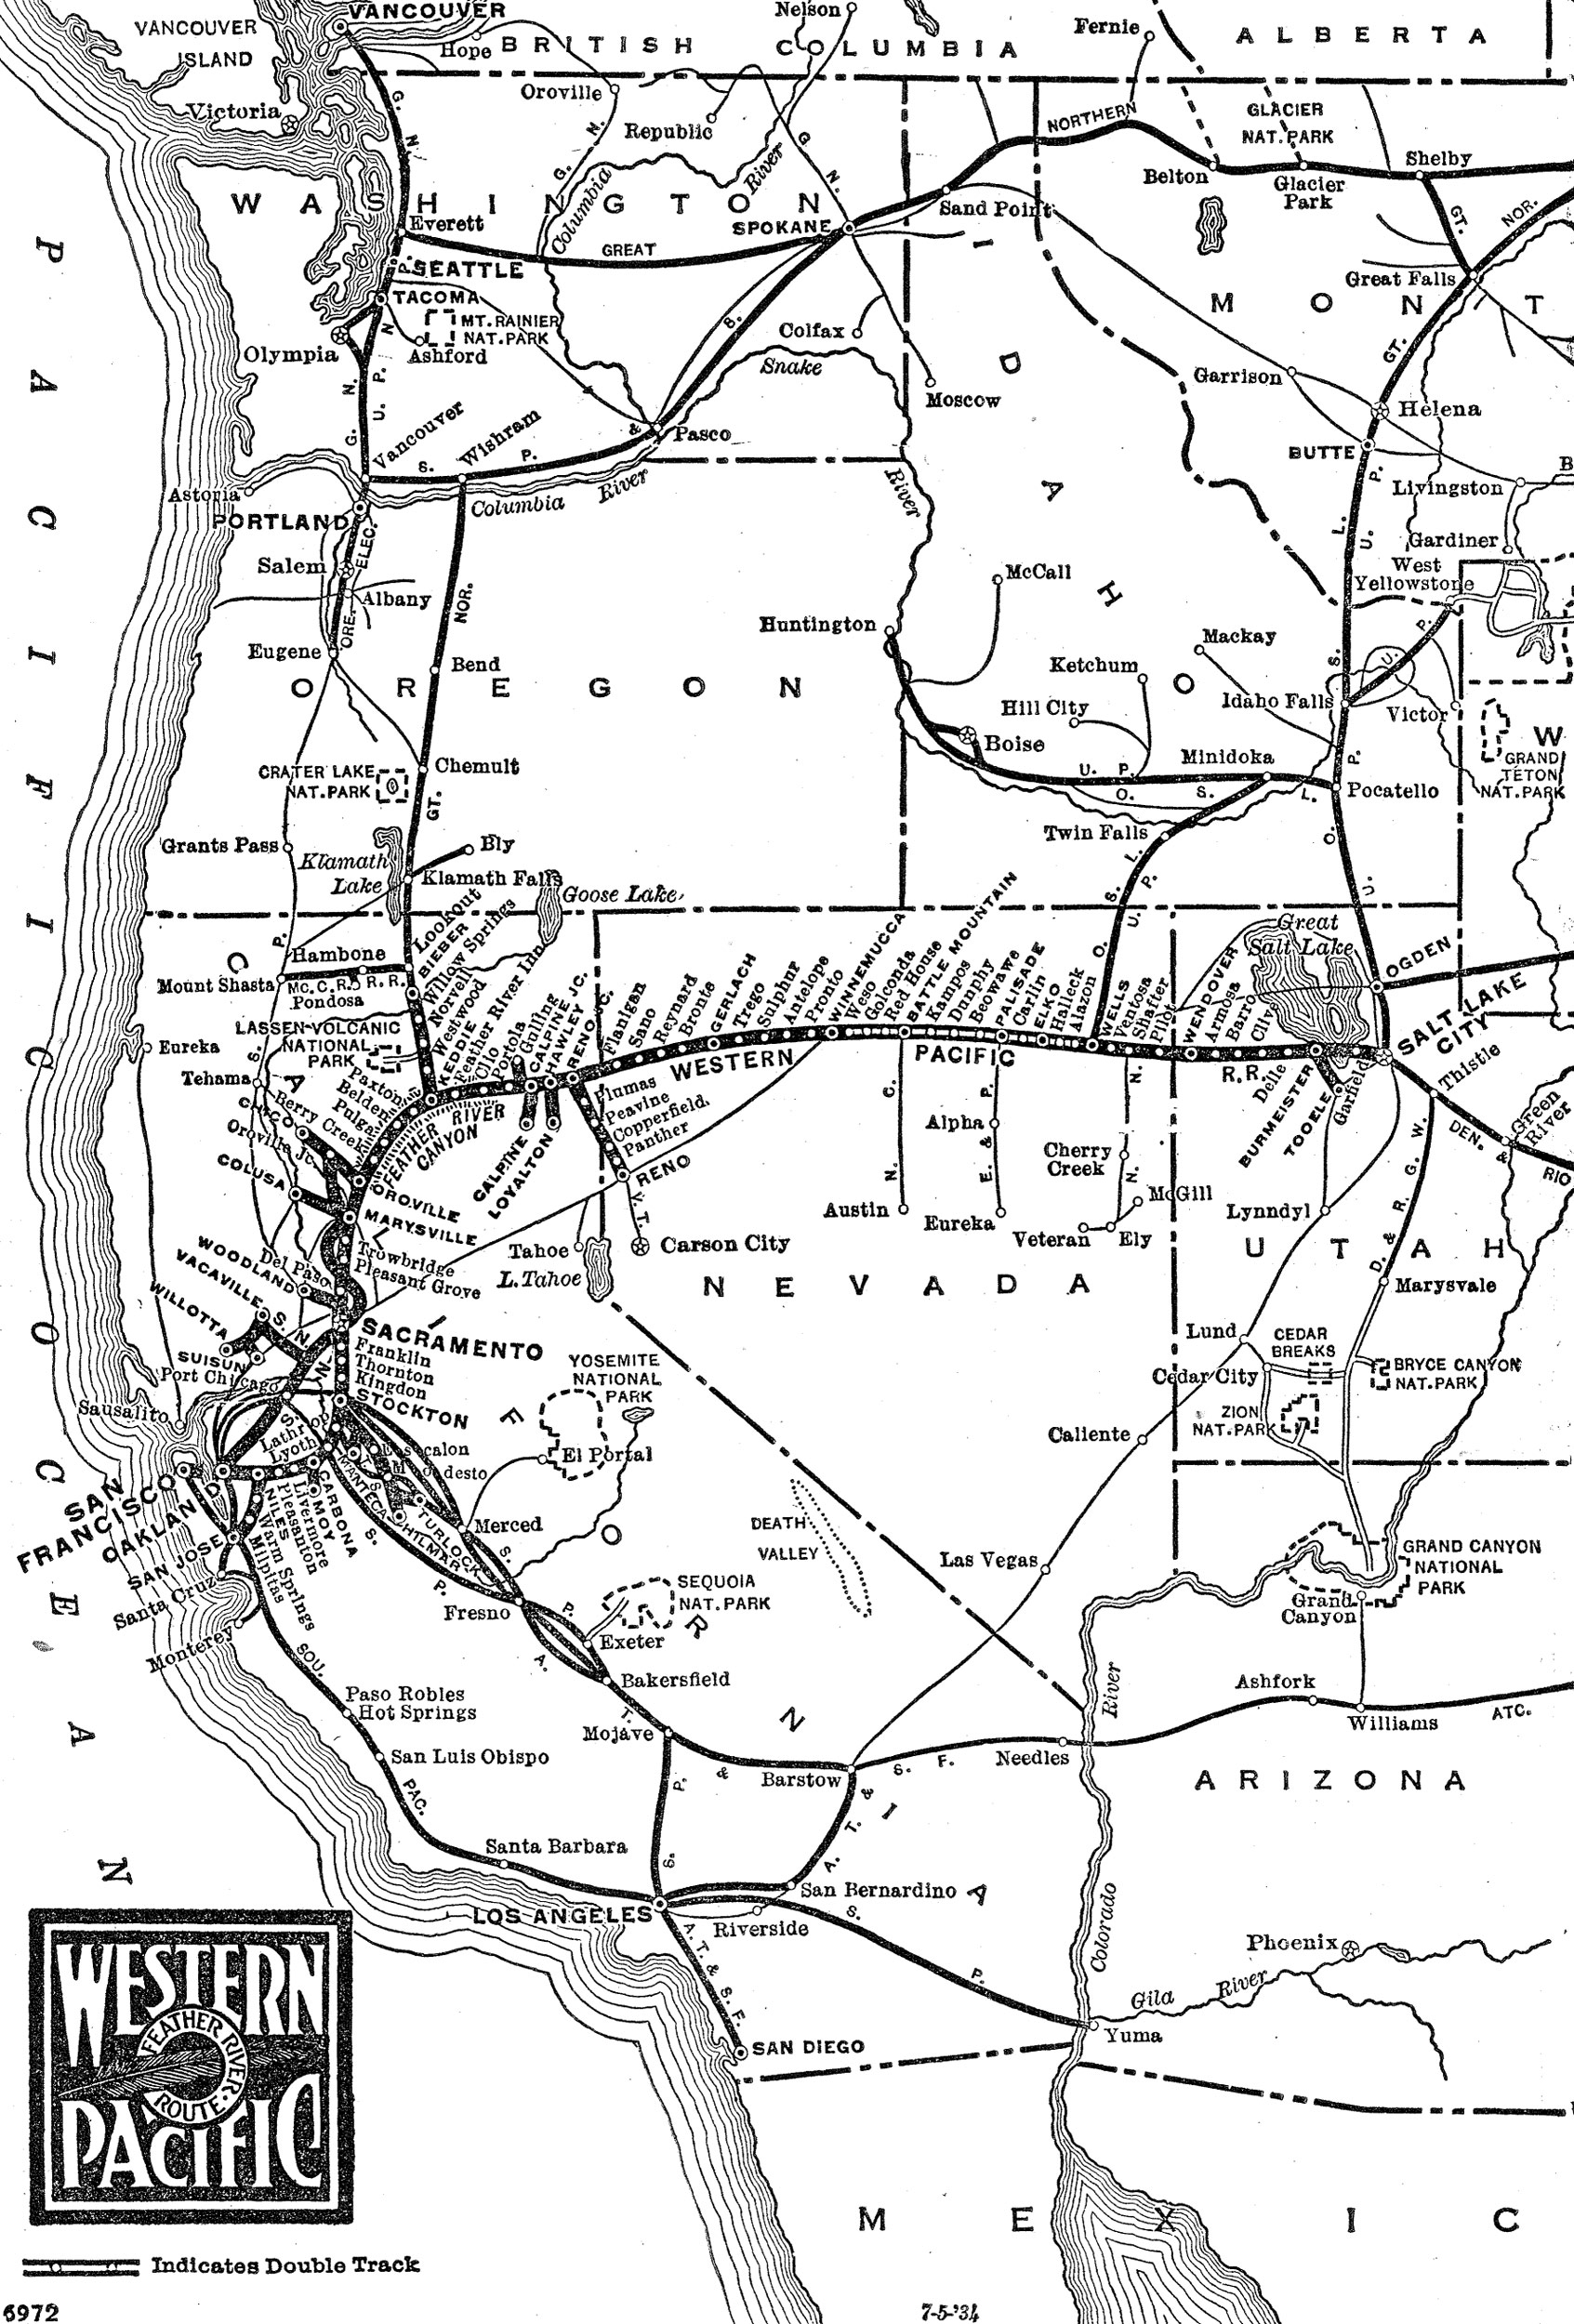 Western Pacific Railroad The Feather River Route